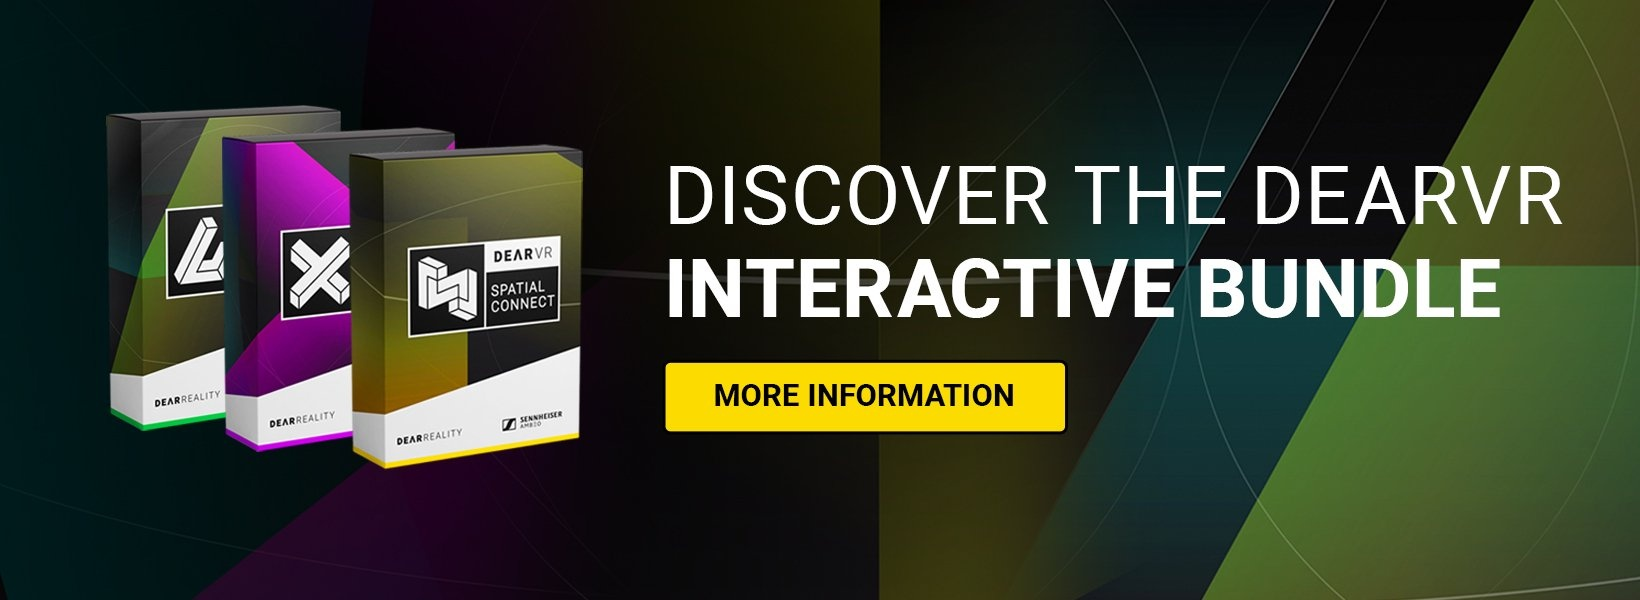 dearVR_INTERACTIVE_BUNDLE